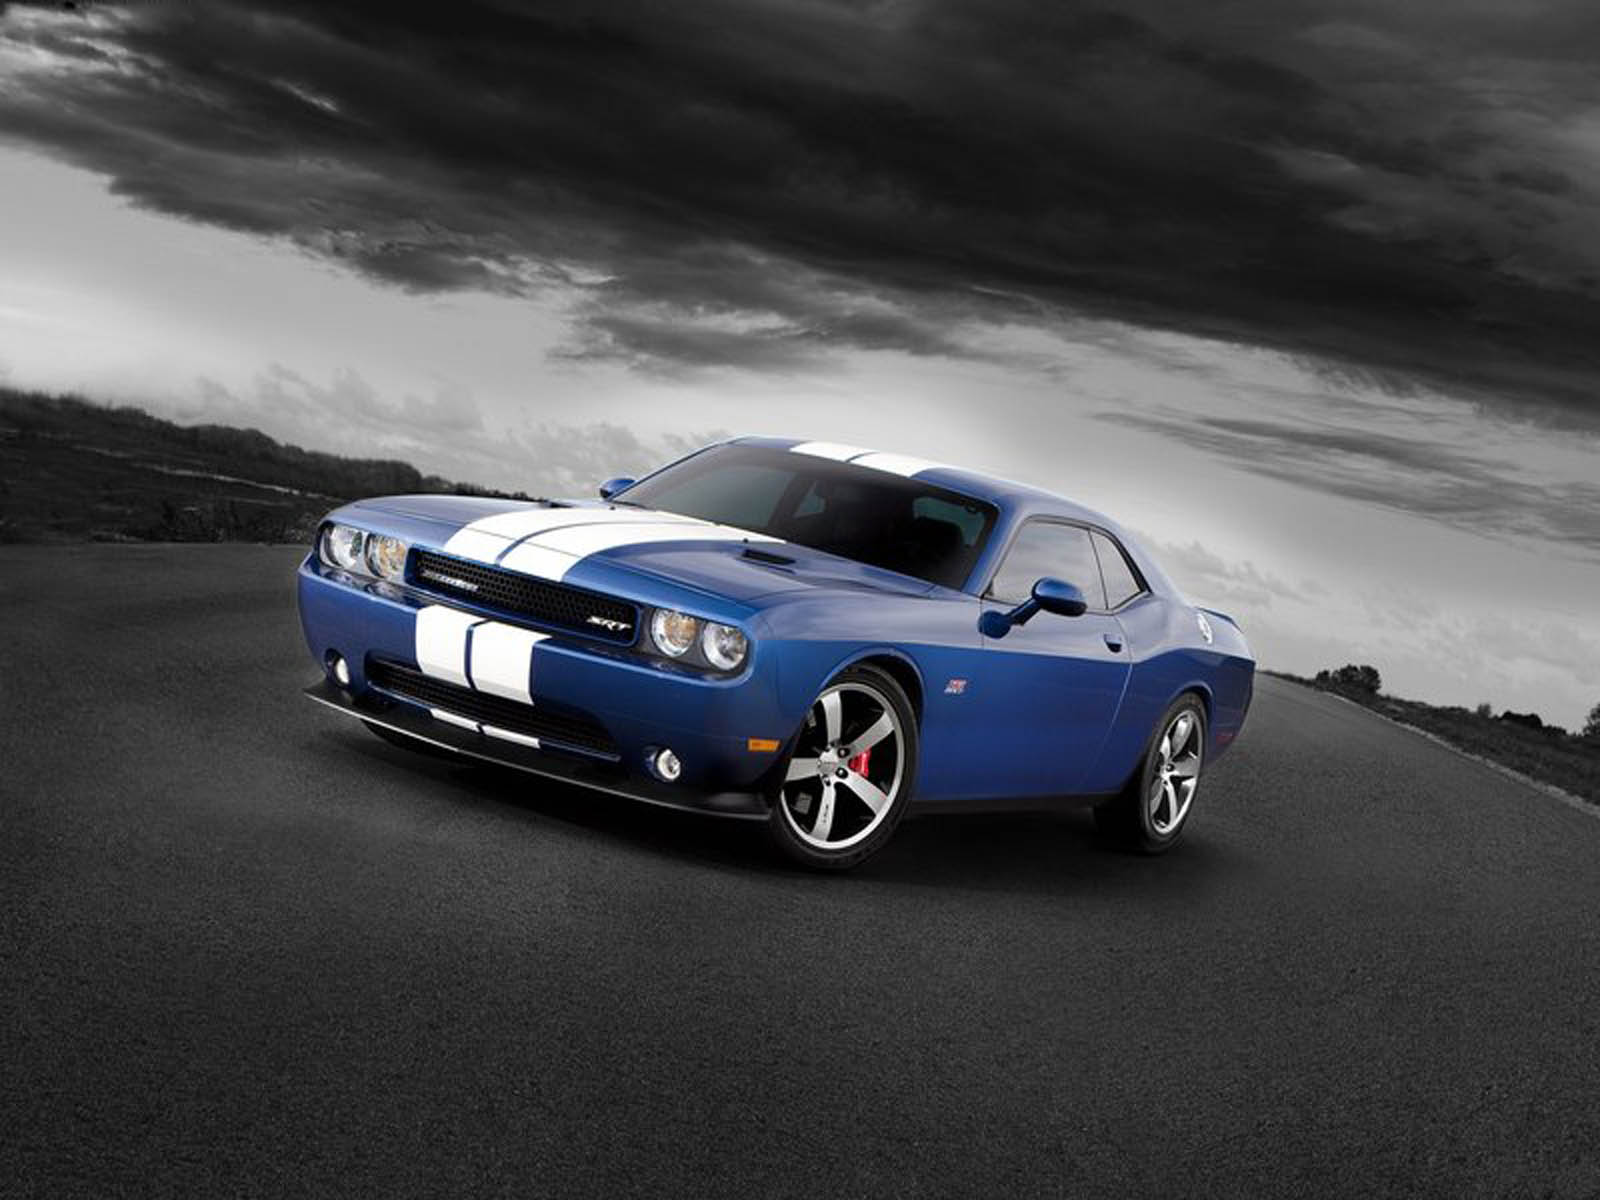 dodge challenger srt8 car - nature wallpapers